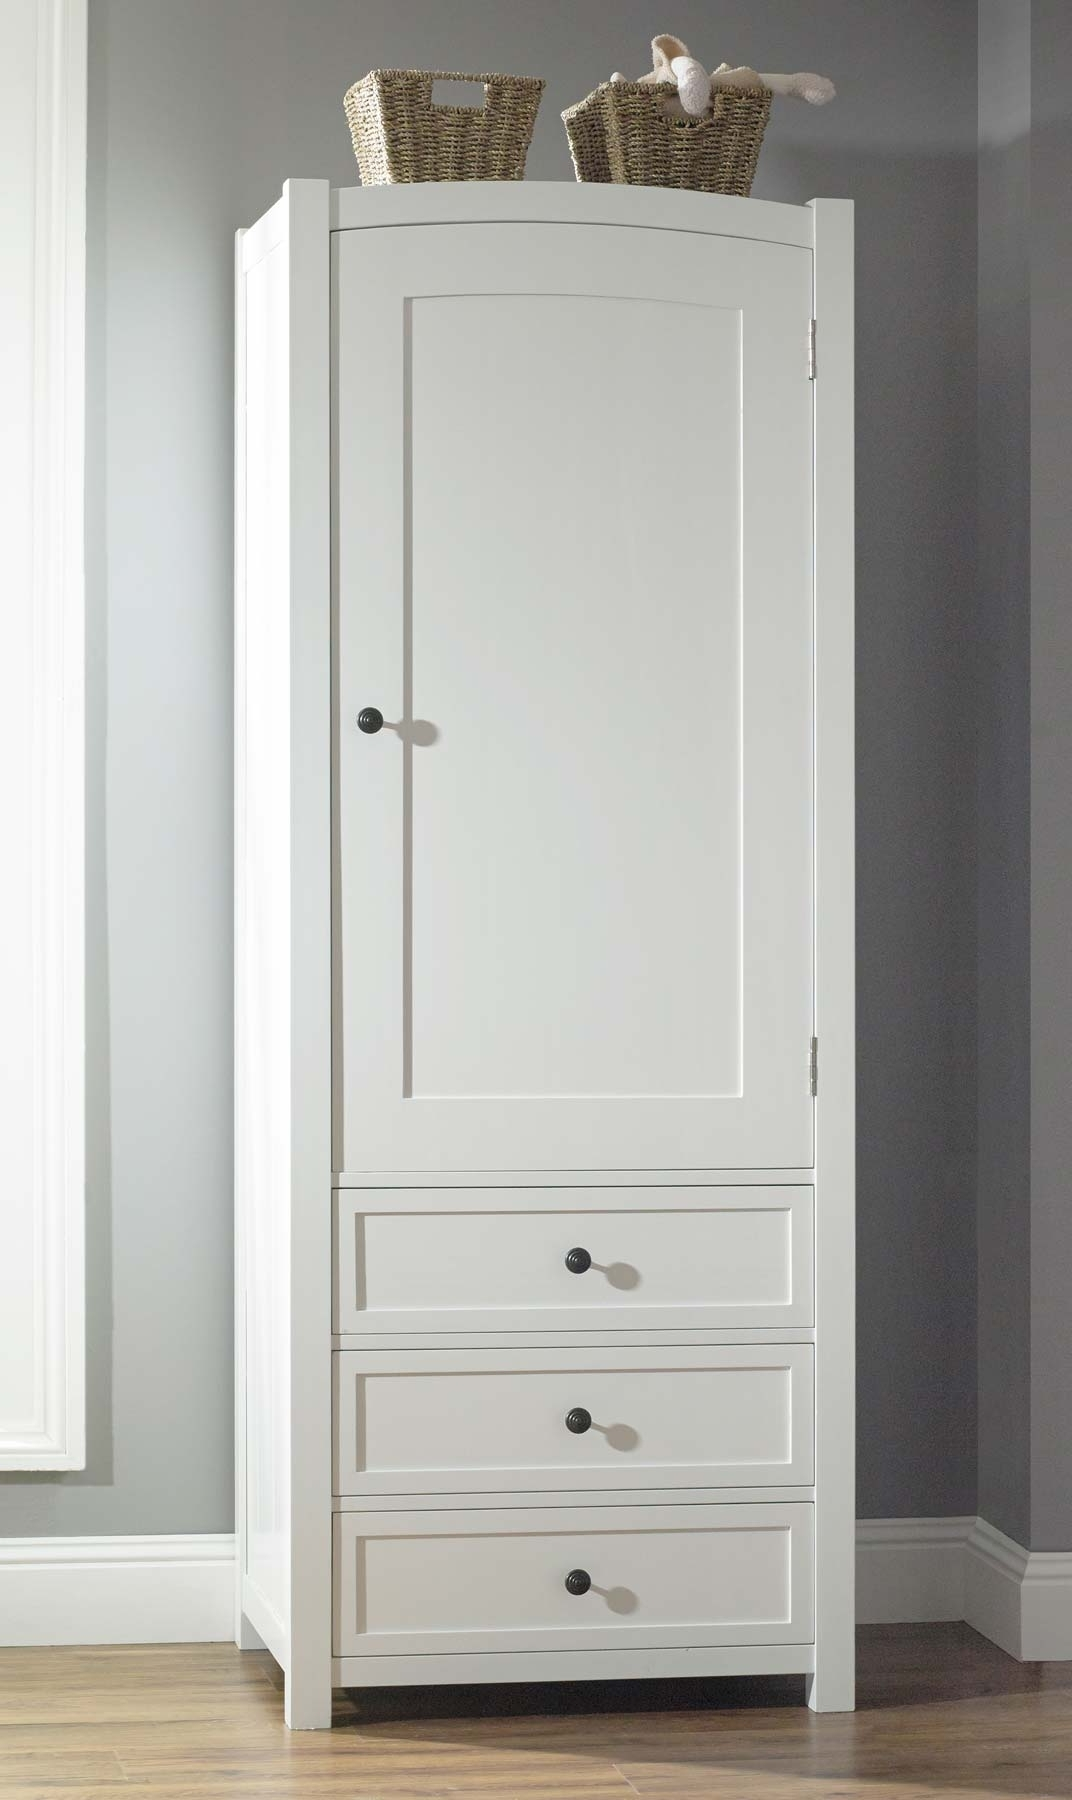 White Wood Wardrobe With Drawers • Drawer Ideas With Regard To Current White Wood Wardrobes (View 11 of 15)